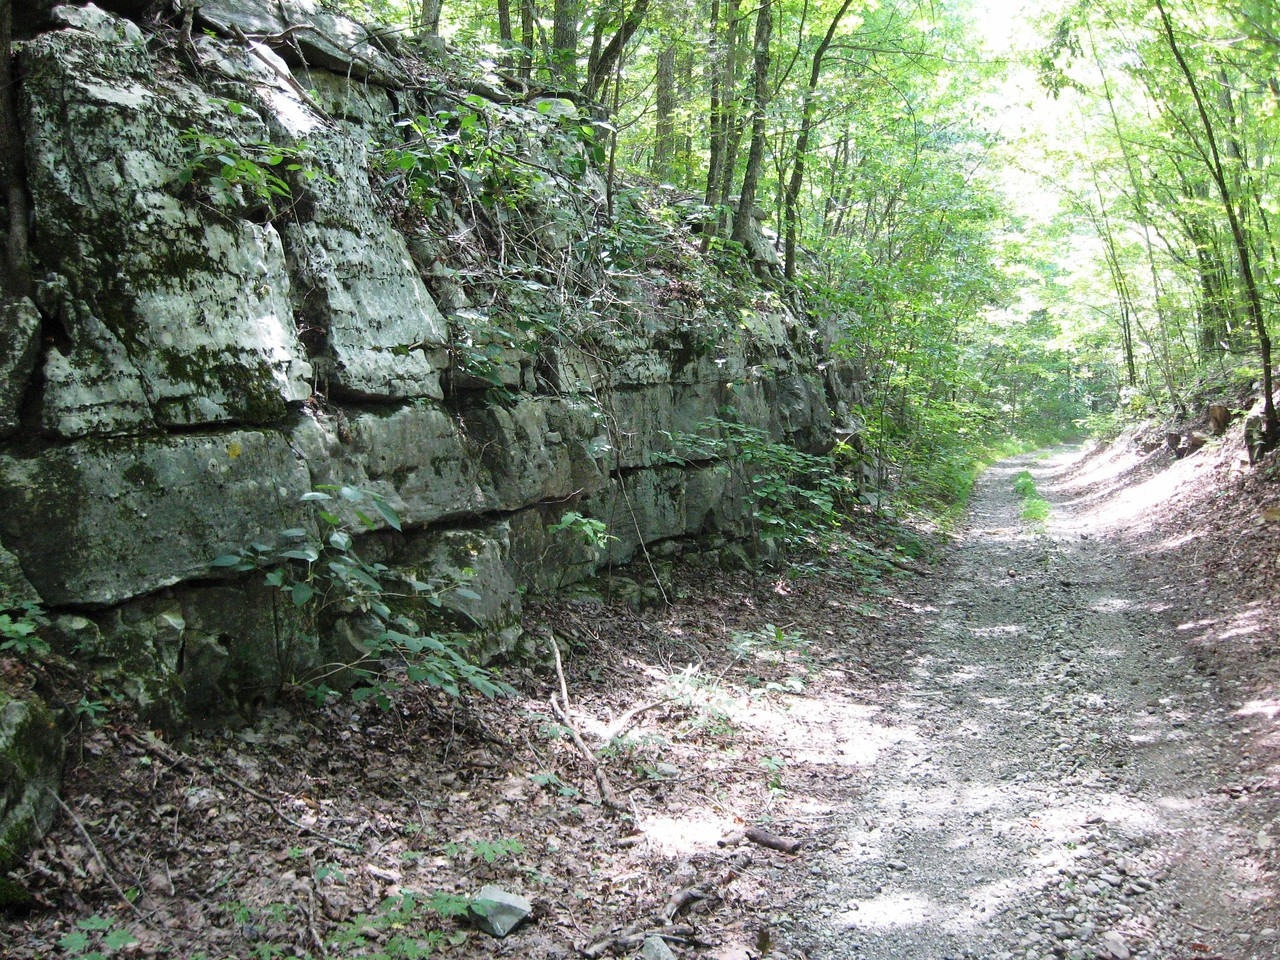 The northern property boundary is a former railroad right-of-way that is in the process of being transformed into part of the Mountain Goat Trail